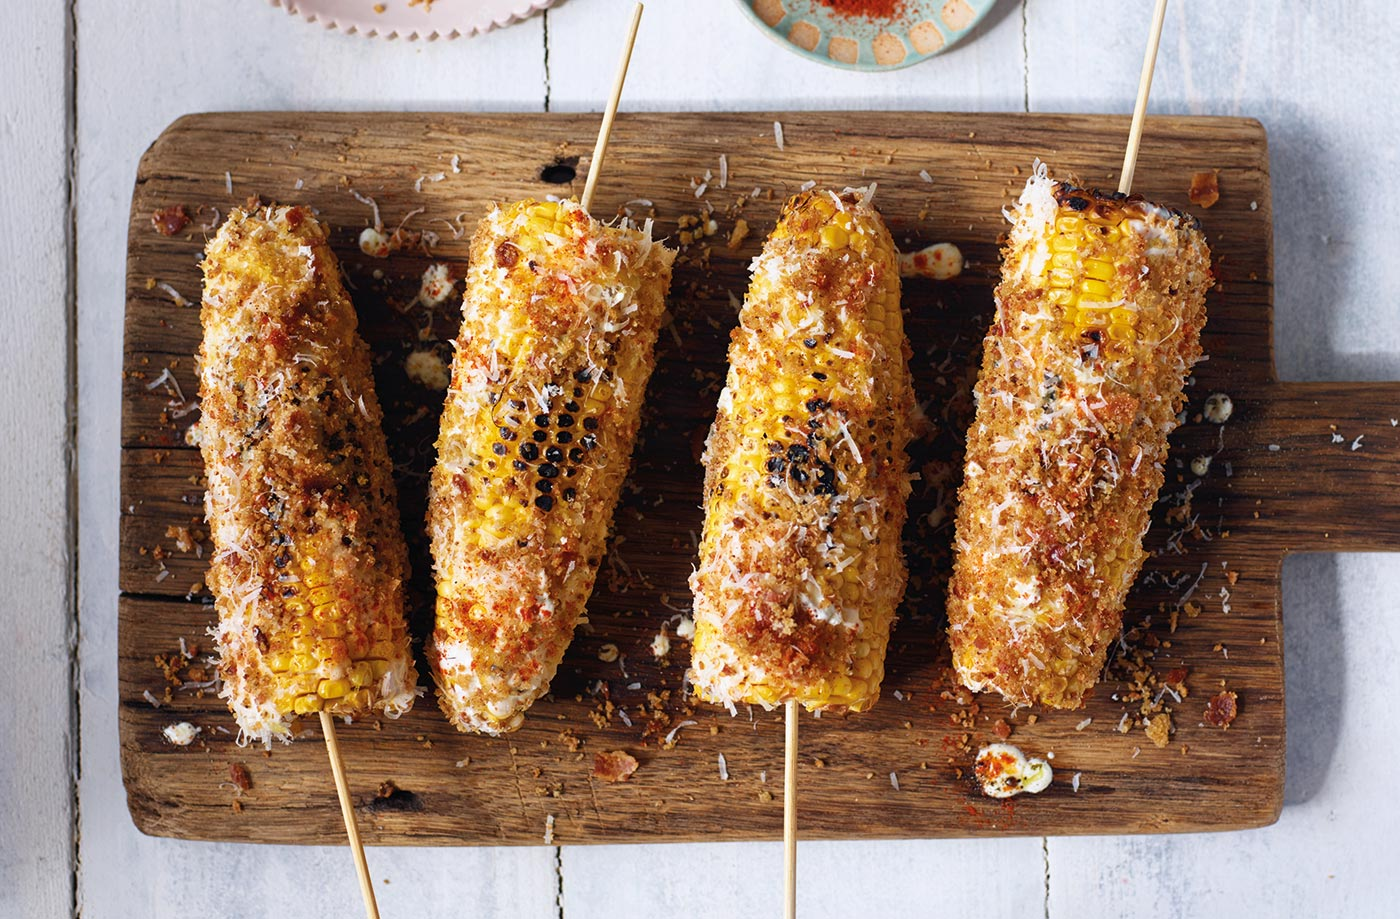 Supercharged corn on the cob recipe